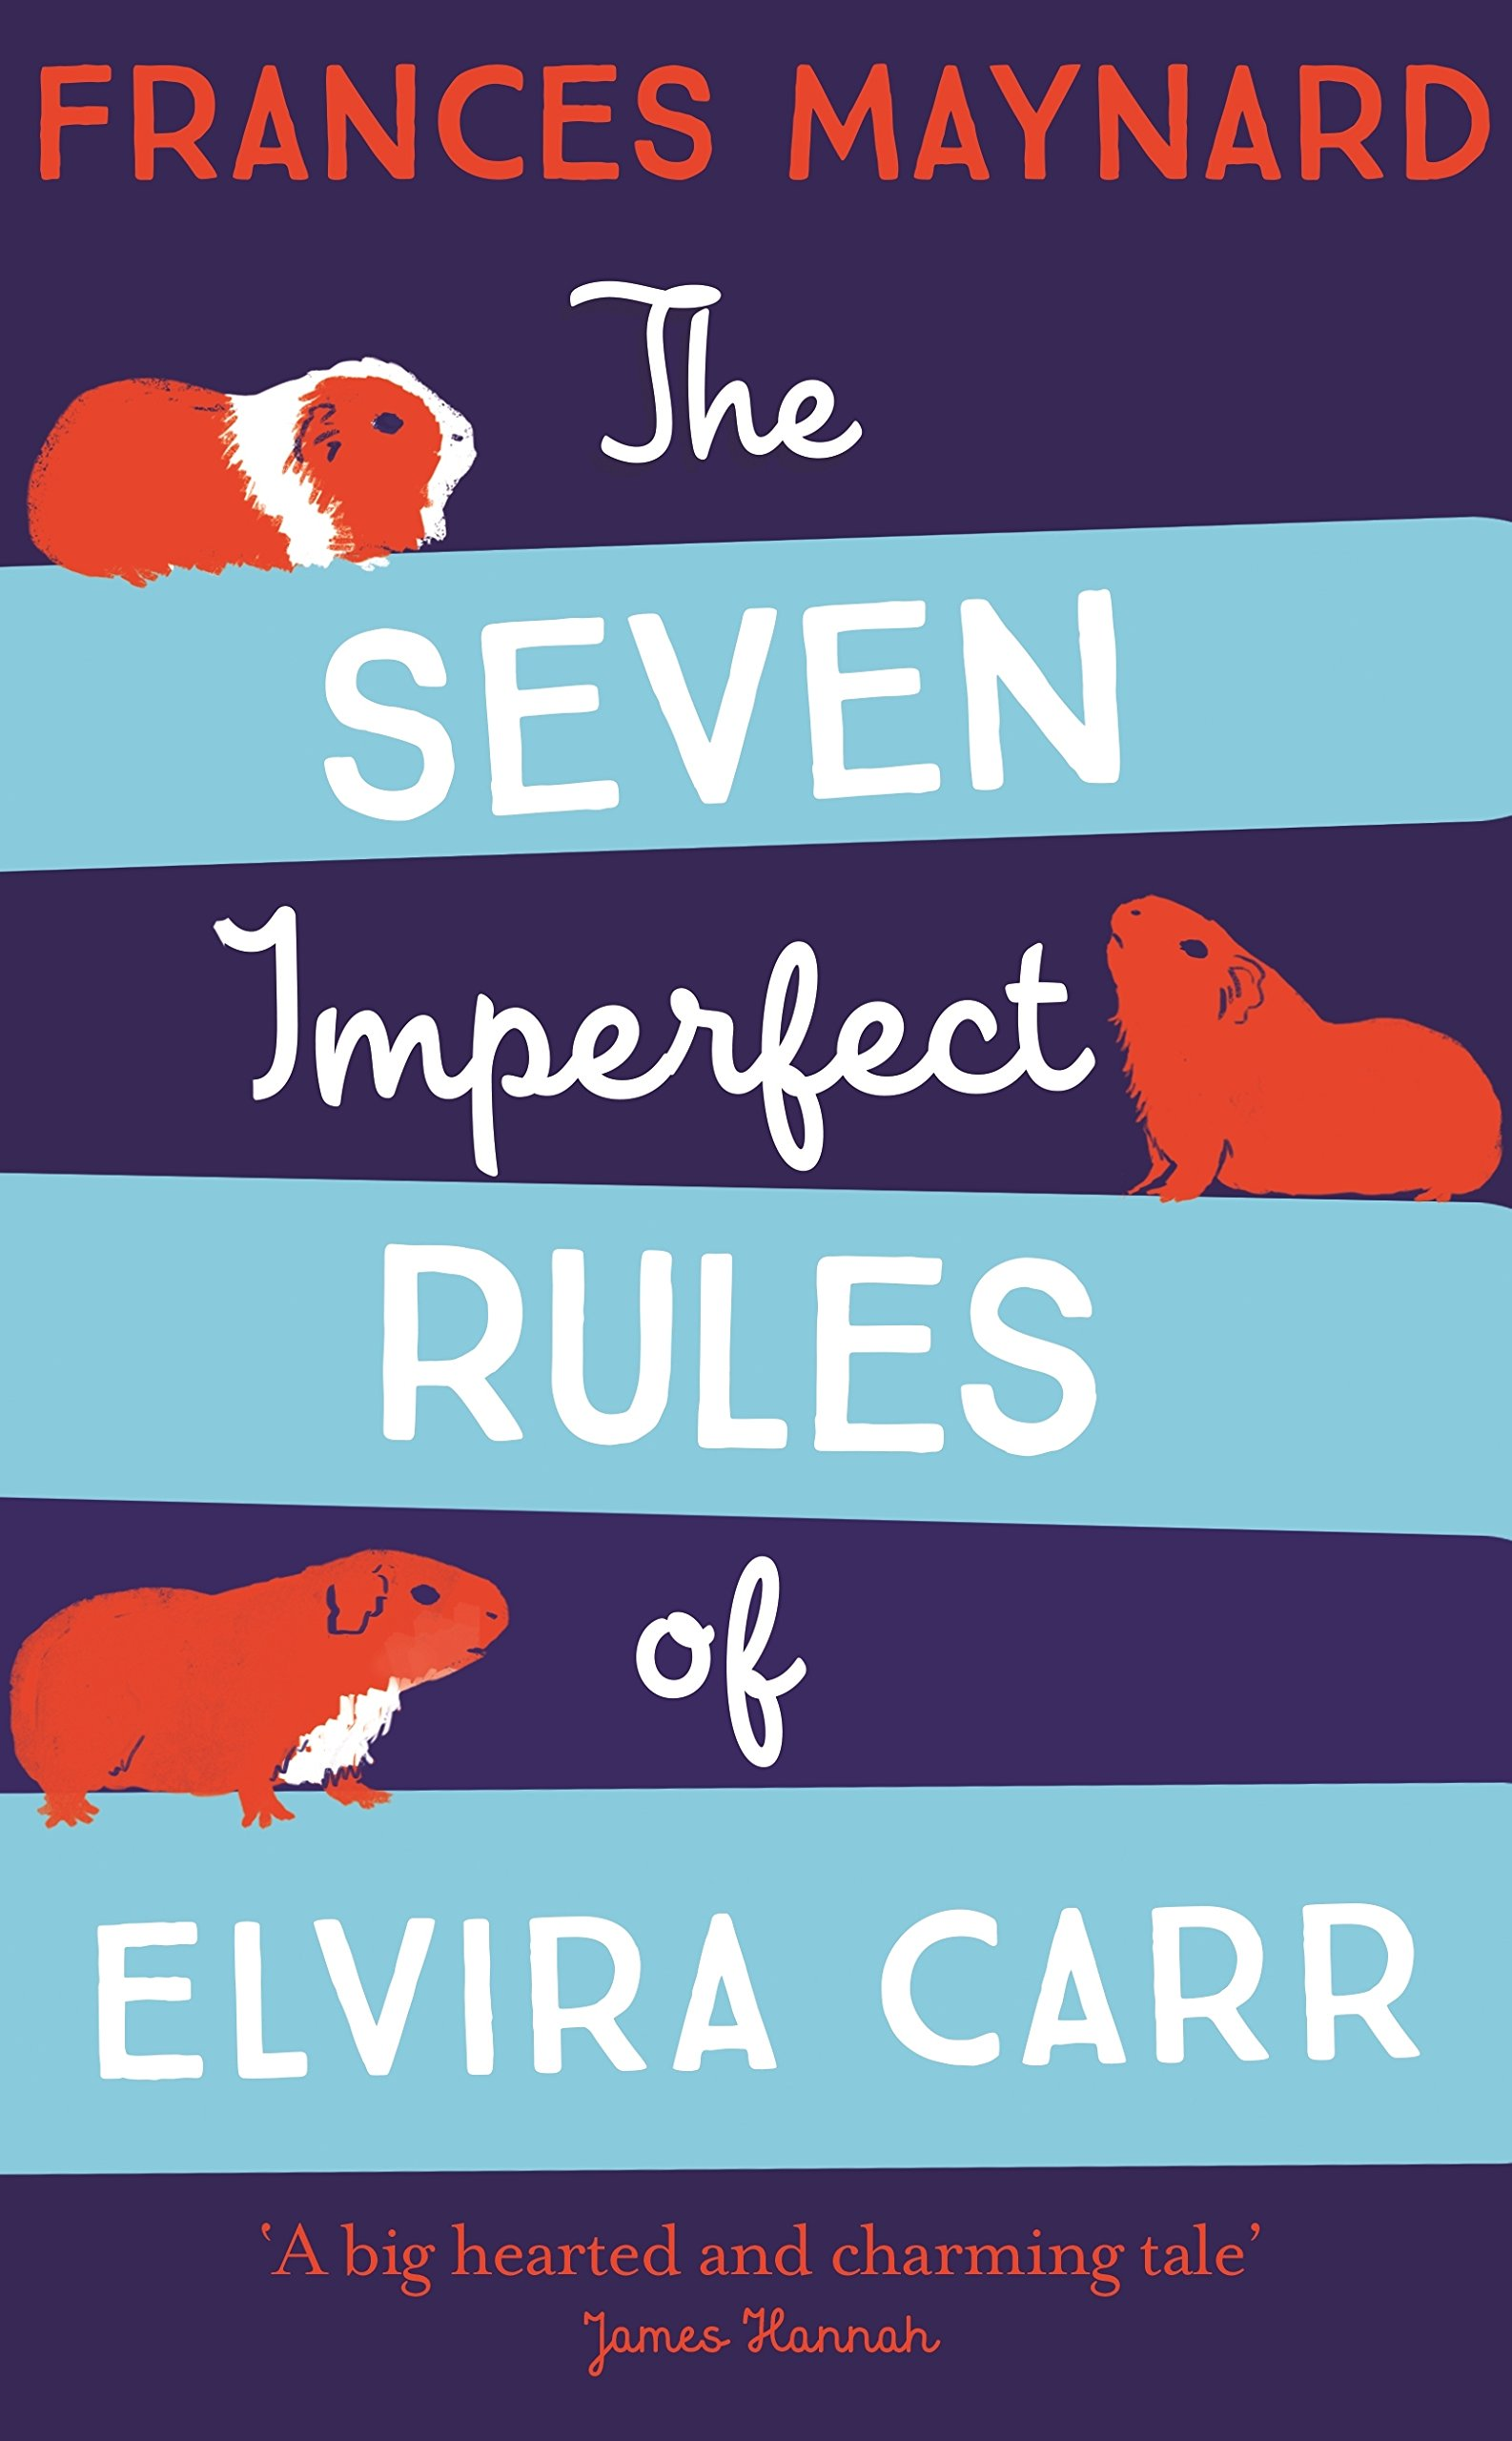 The seven imperfect rules of elvira carr cover